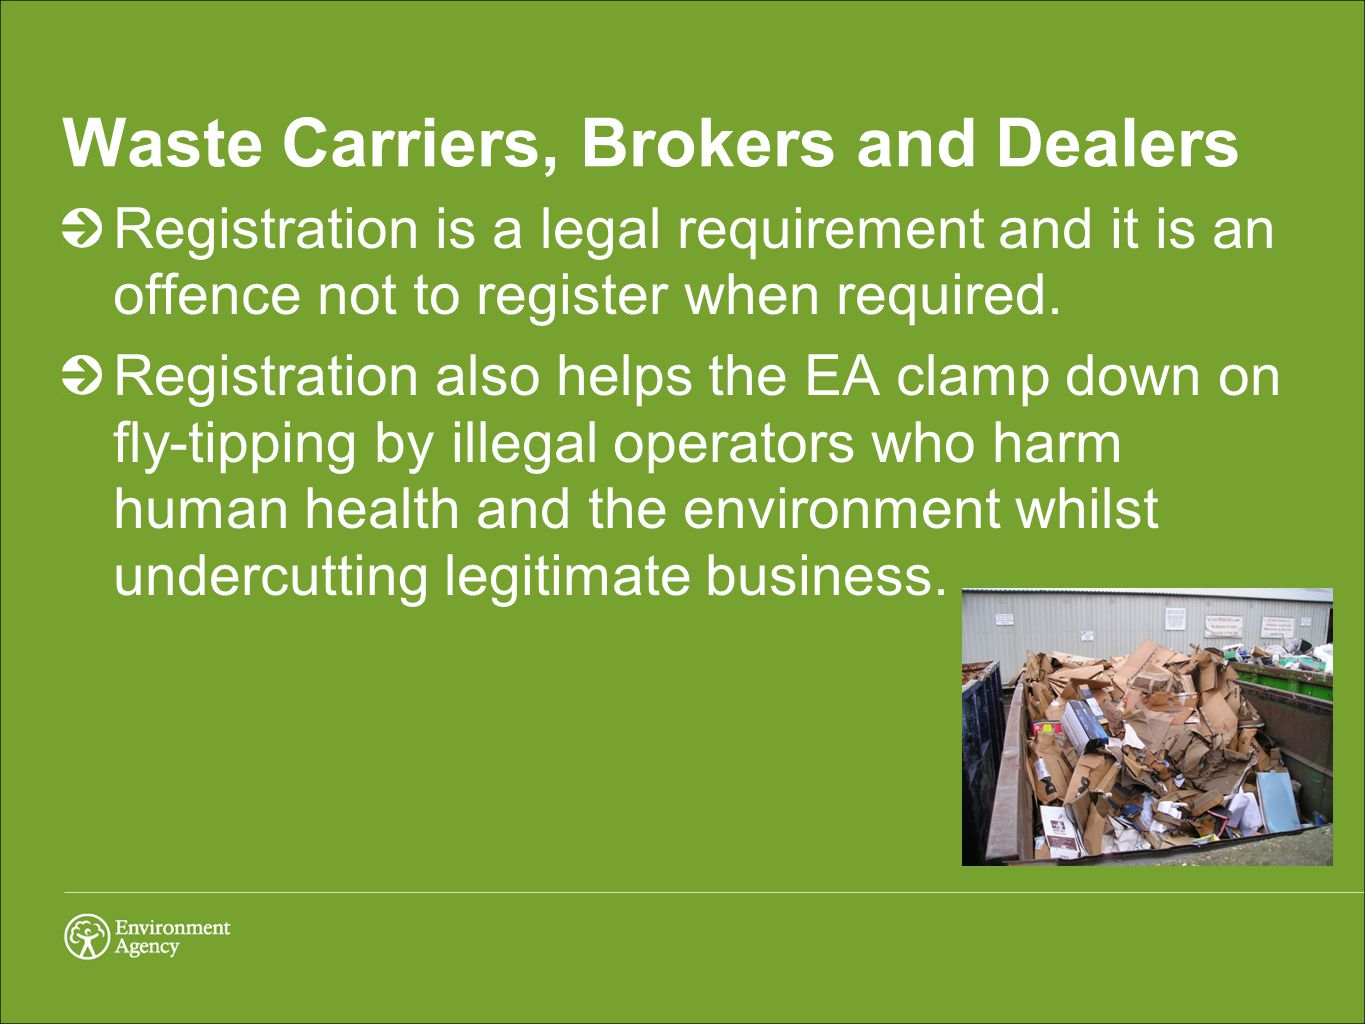 Further details: http://www.environment- agency.gov.uk/business/topics/waste/141552.aspx http://www.environment- agency.gov.uk/business/topics/waste/141552.aspx (Packaging) http://www.environment- agency.gov.uk/business/sectors/wastecarriers.aspx http://www.environment- agency.gov.uk/business/sectors/wastecarriers.aspx (Waste Carriers/Brokers and Dealers) http://www.environment-agency.gov.uk/business/145770.aspx http://www.environment-agency.gov.uk/business/145770.aspx (IED)